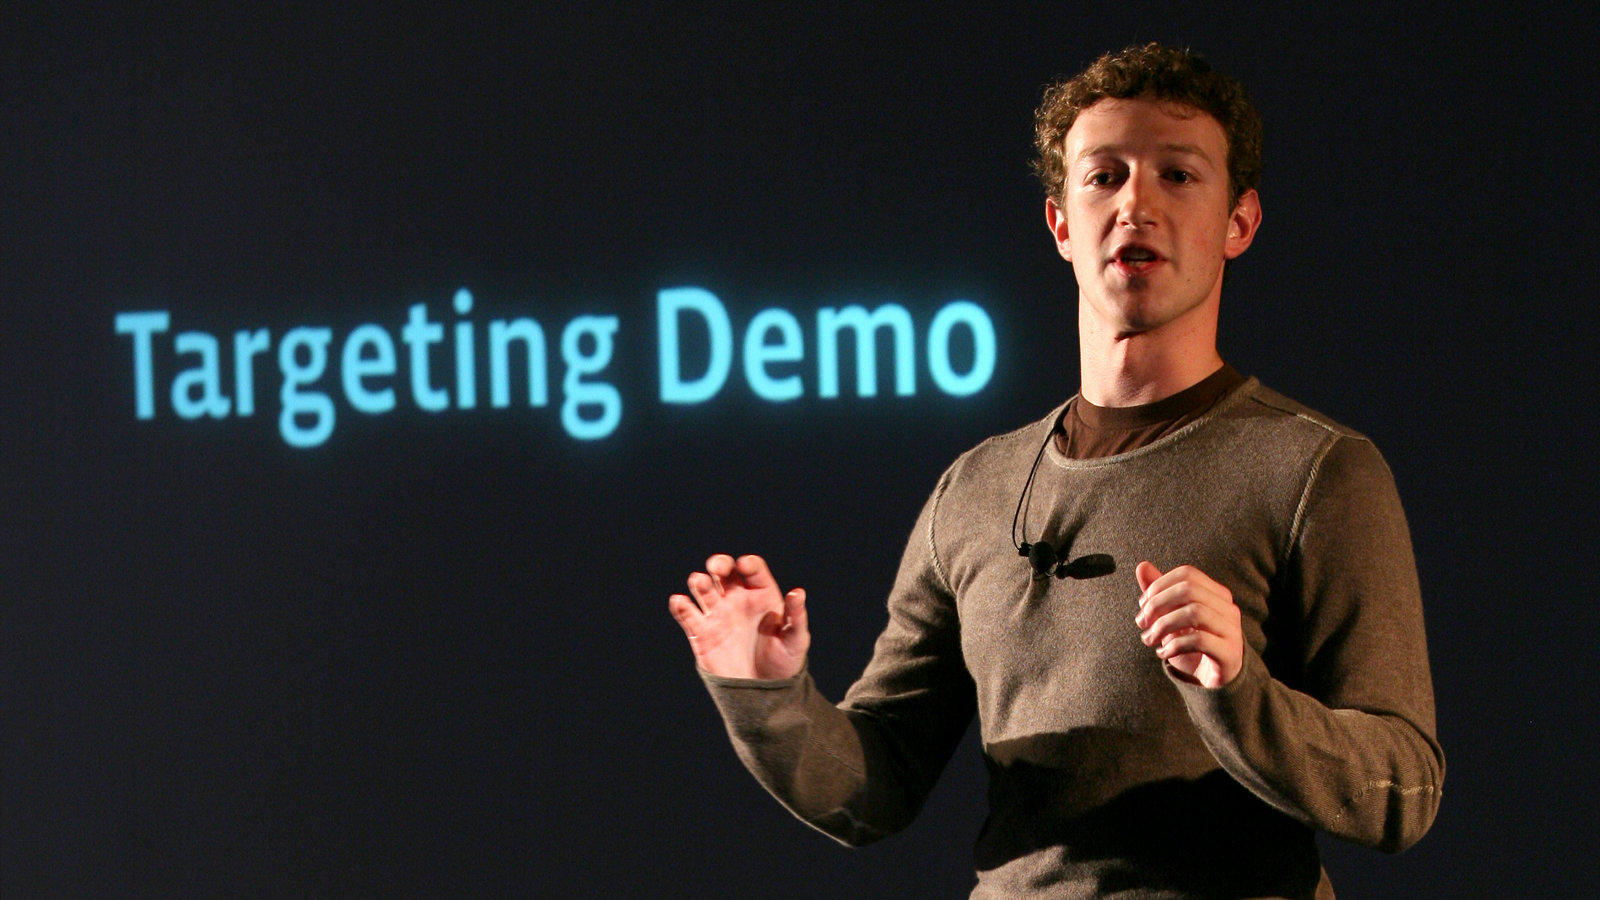 Facebook CEO and founder Mark Zuckerberg speaks to press and advertising partners at a Facebook announcement in New York in this November 6, 2007 file photo.